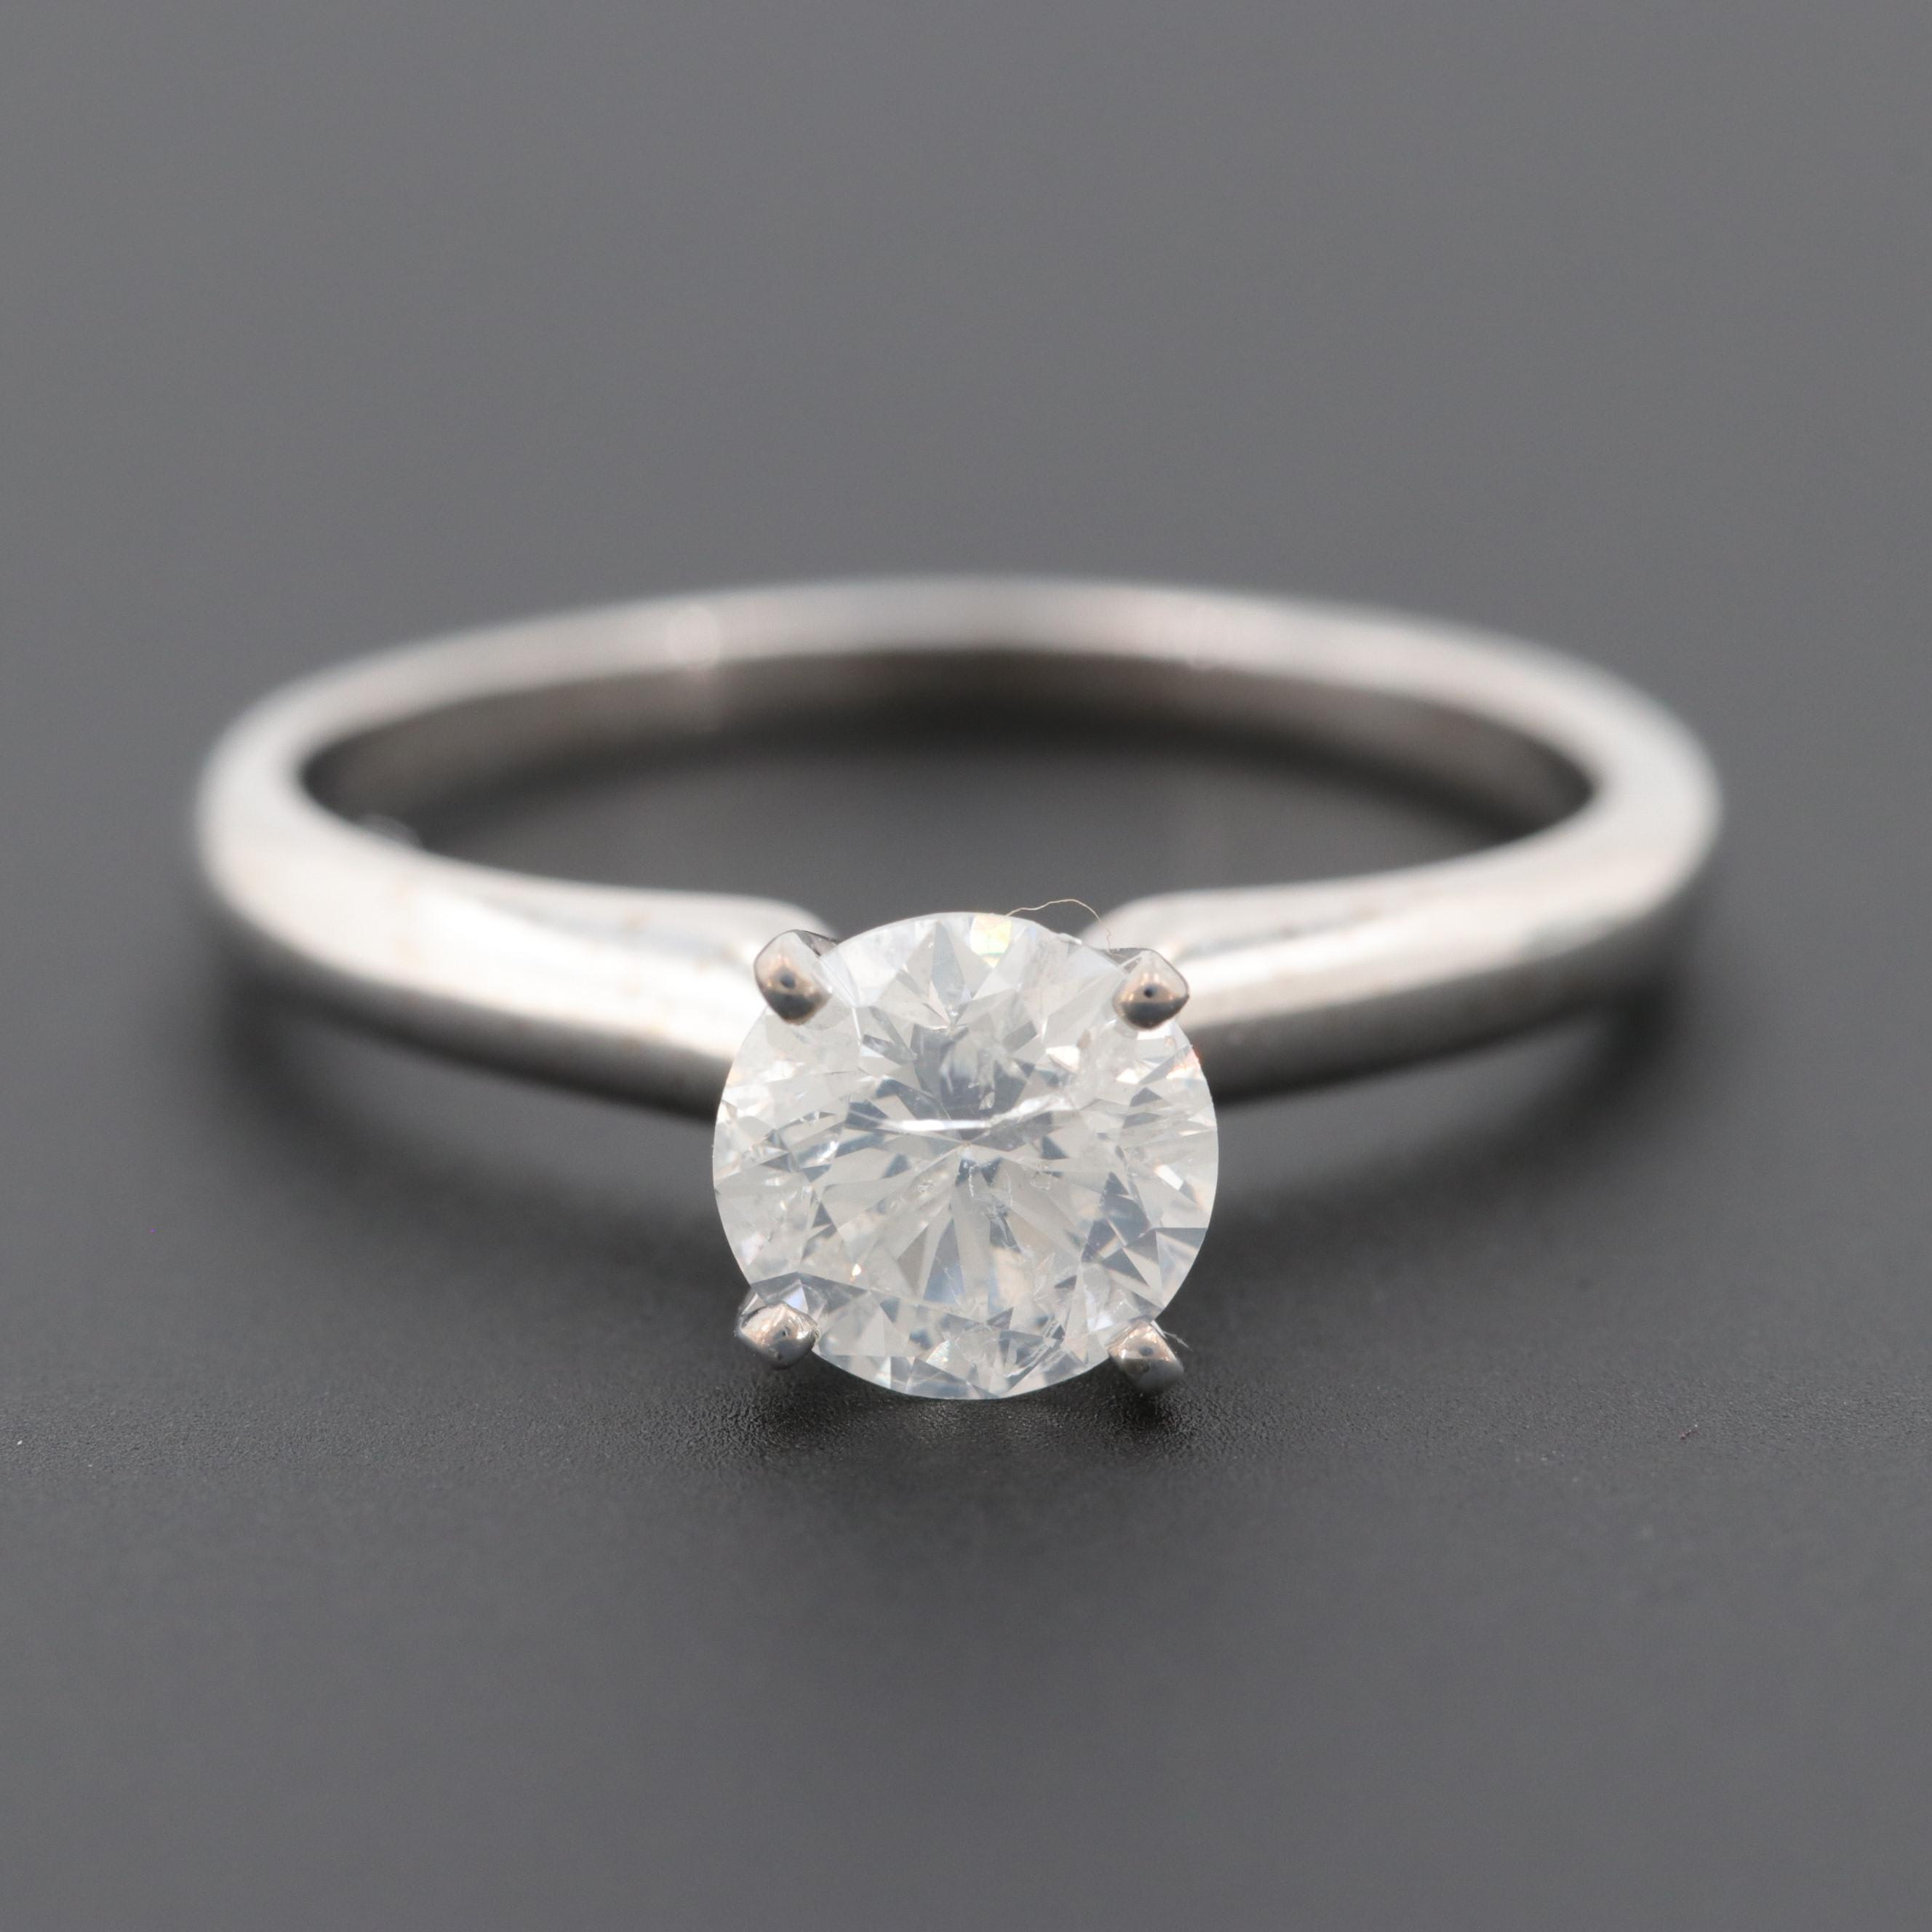 14K and 10K White Gold Diamond Solitaire Ring